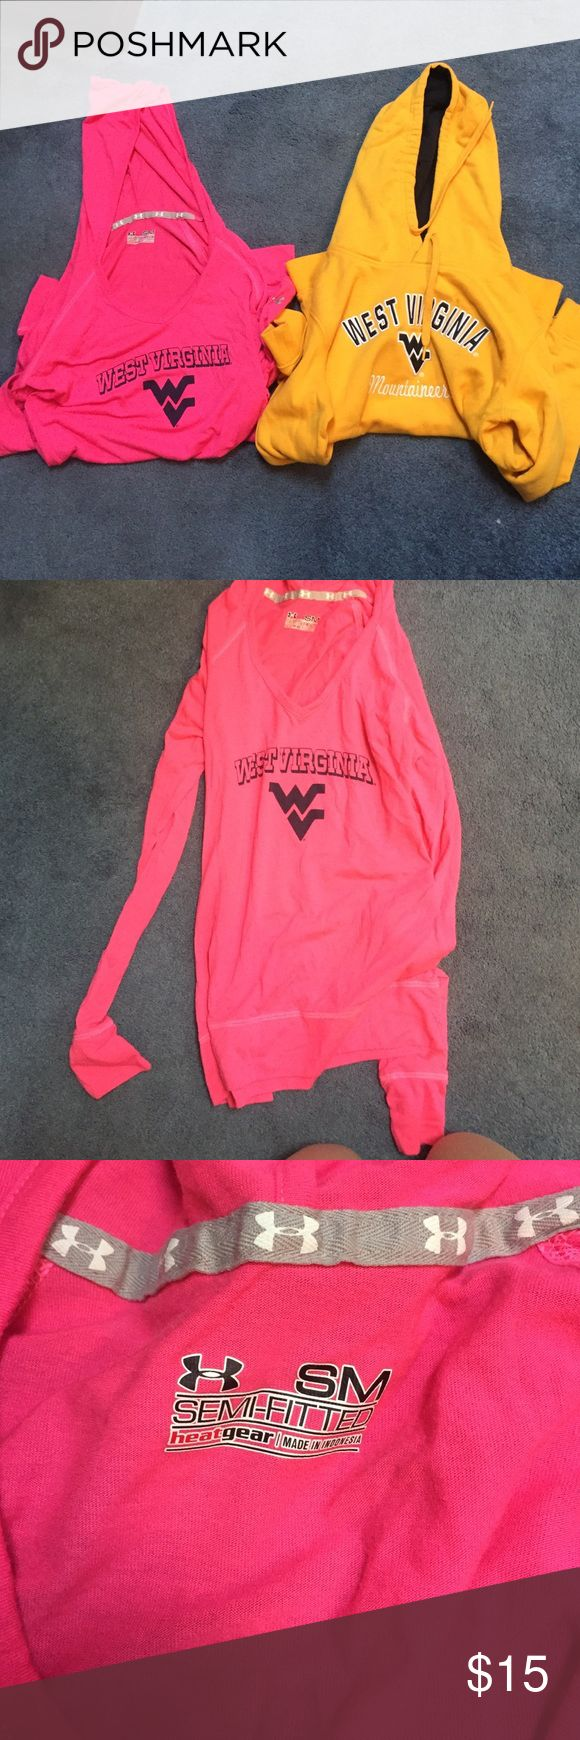 BUNDLE‼️ 1 under armour, hooted tee, 1 gold hoodie BUNDLE!! ANY WEST VIRGINIA FANS?? one under armour long sleeve hooded tee in pink! and one gold West Virginia hoodie from Colosseum athletics!! both in good condition! Under Armour Tops Sweatshirts & Hoodies